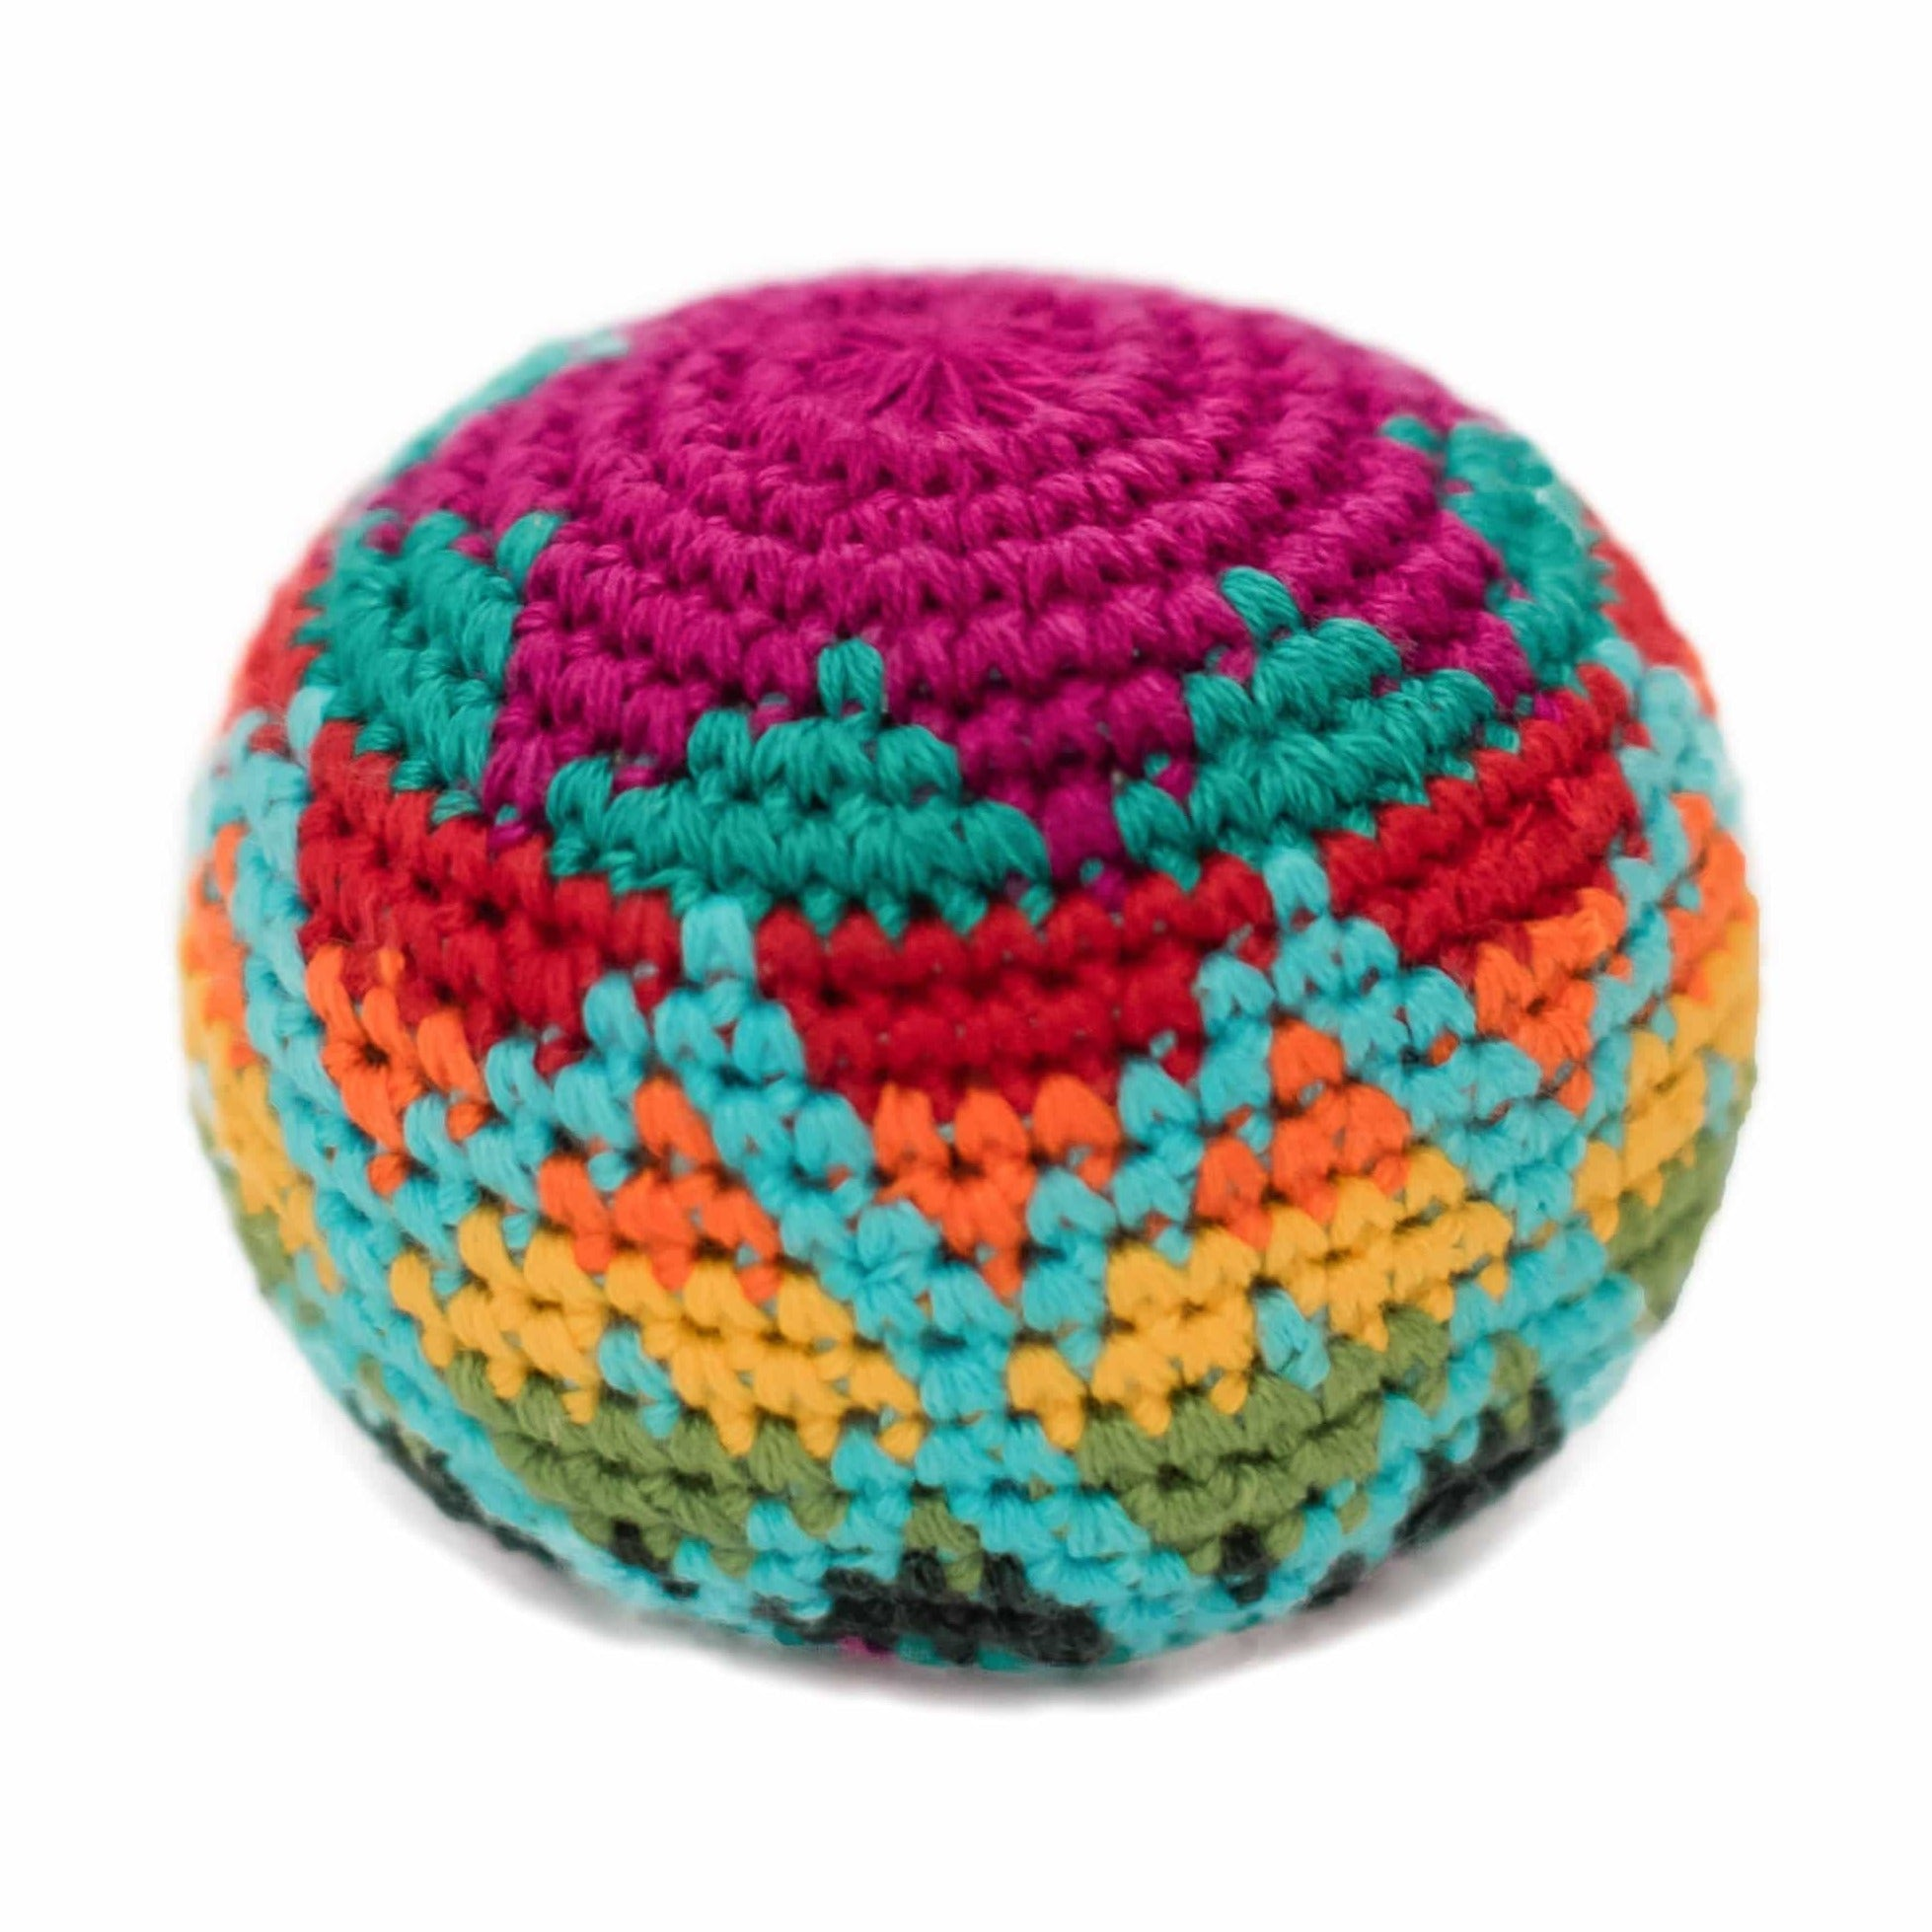 Fair Trade Colorful Hacky Sack ?id=14108868116533